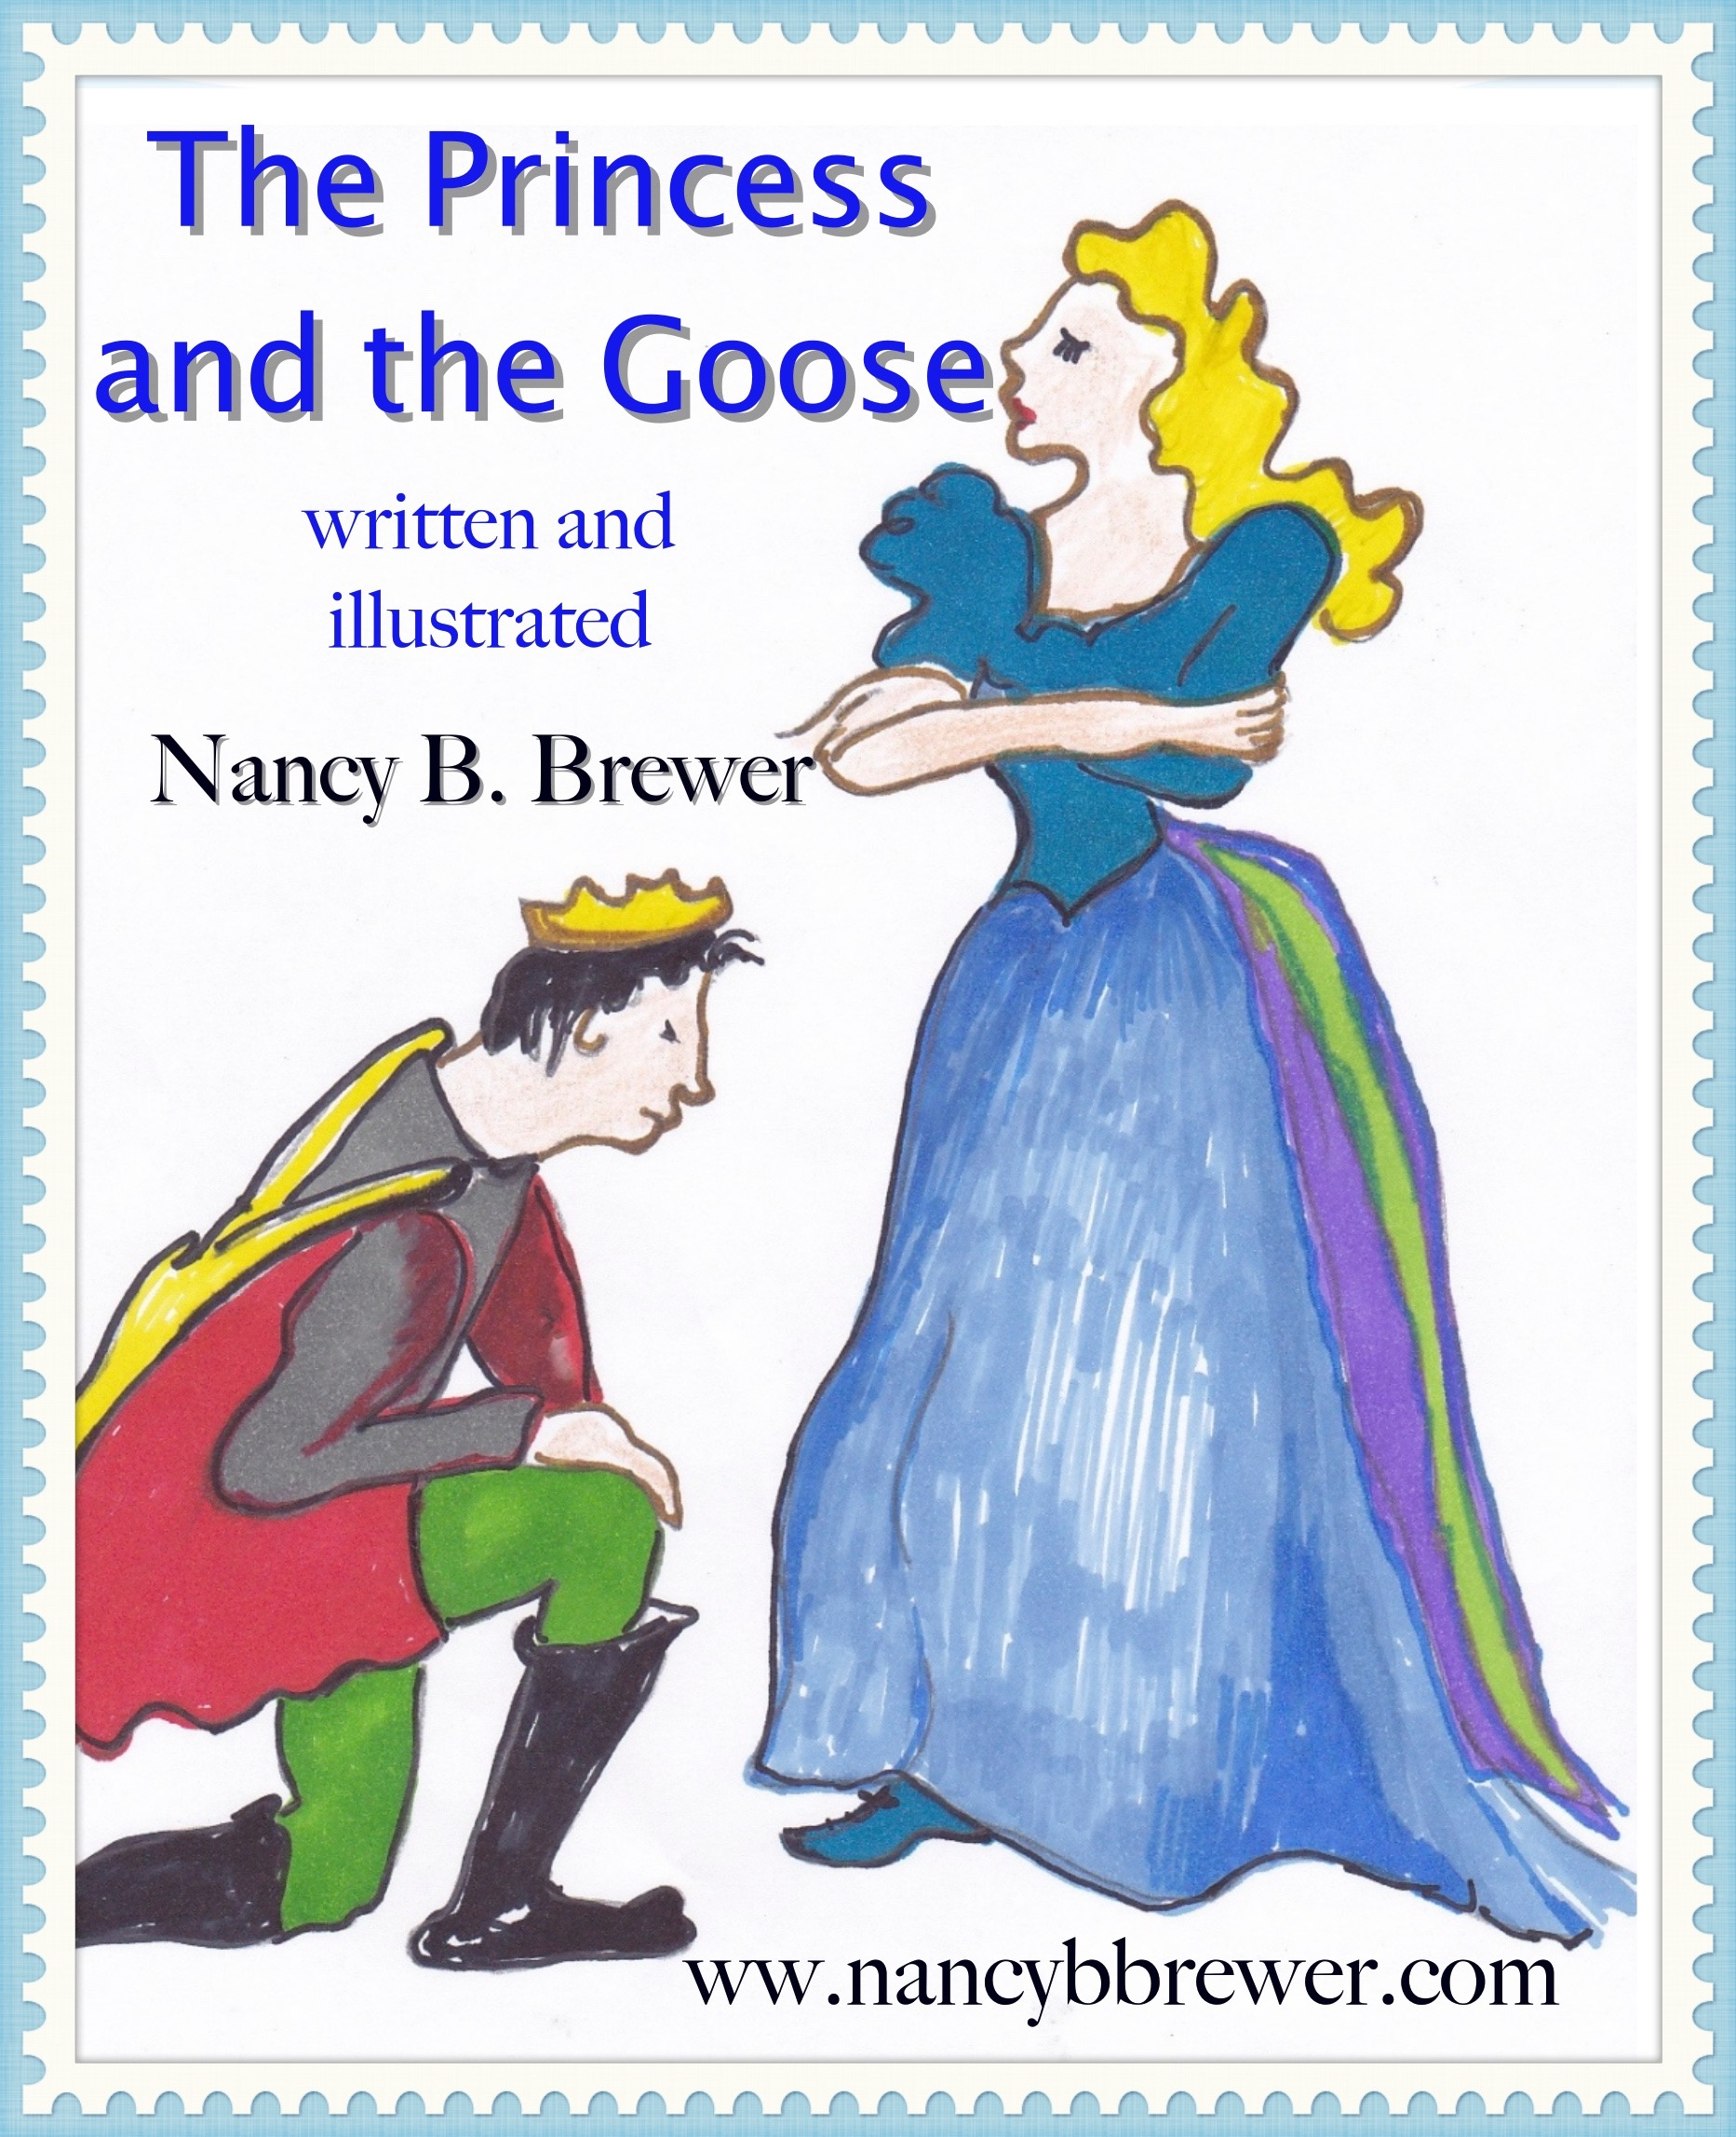 The Princess and the Goose - Children's Ebook